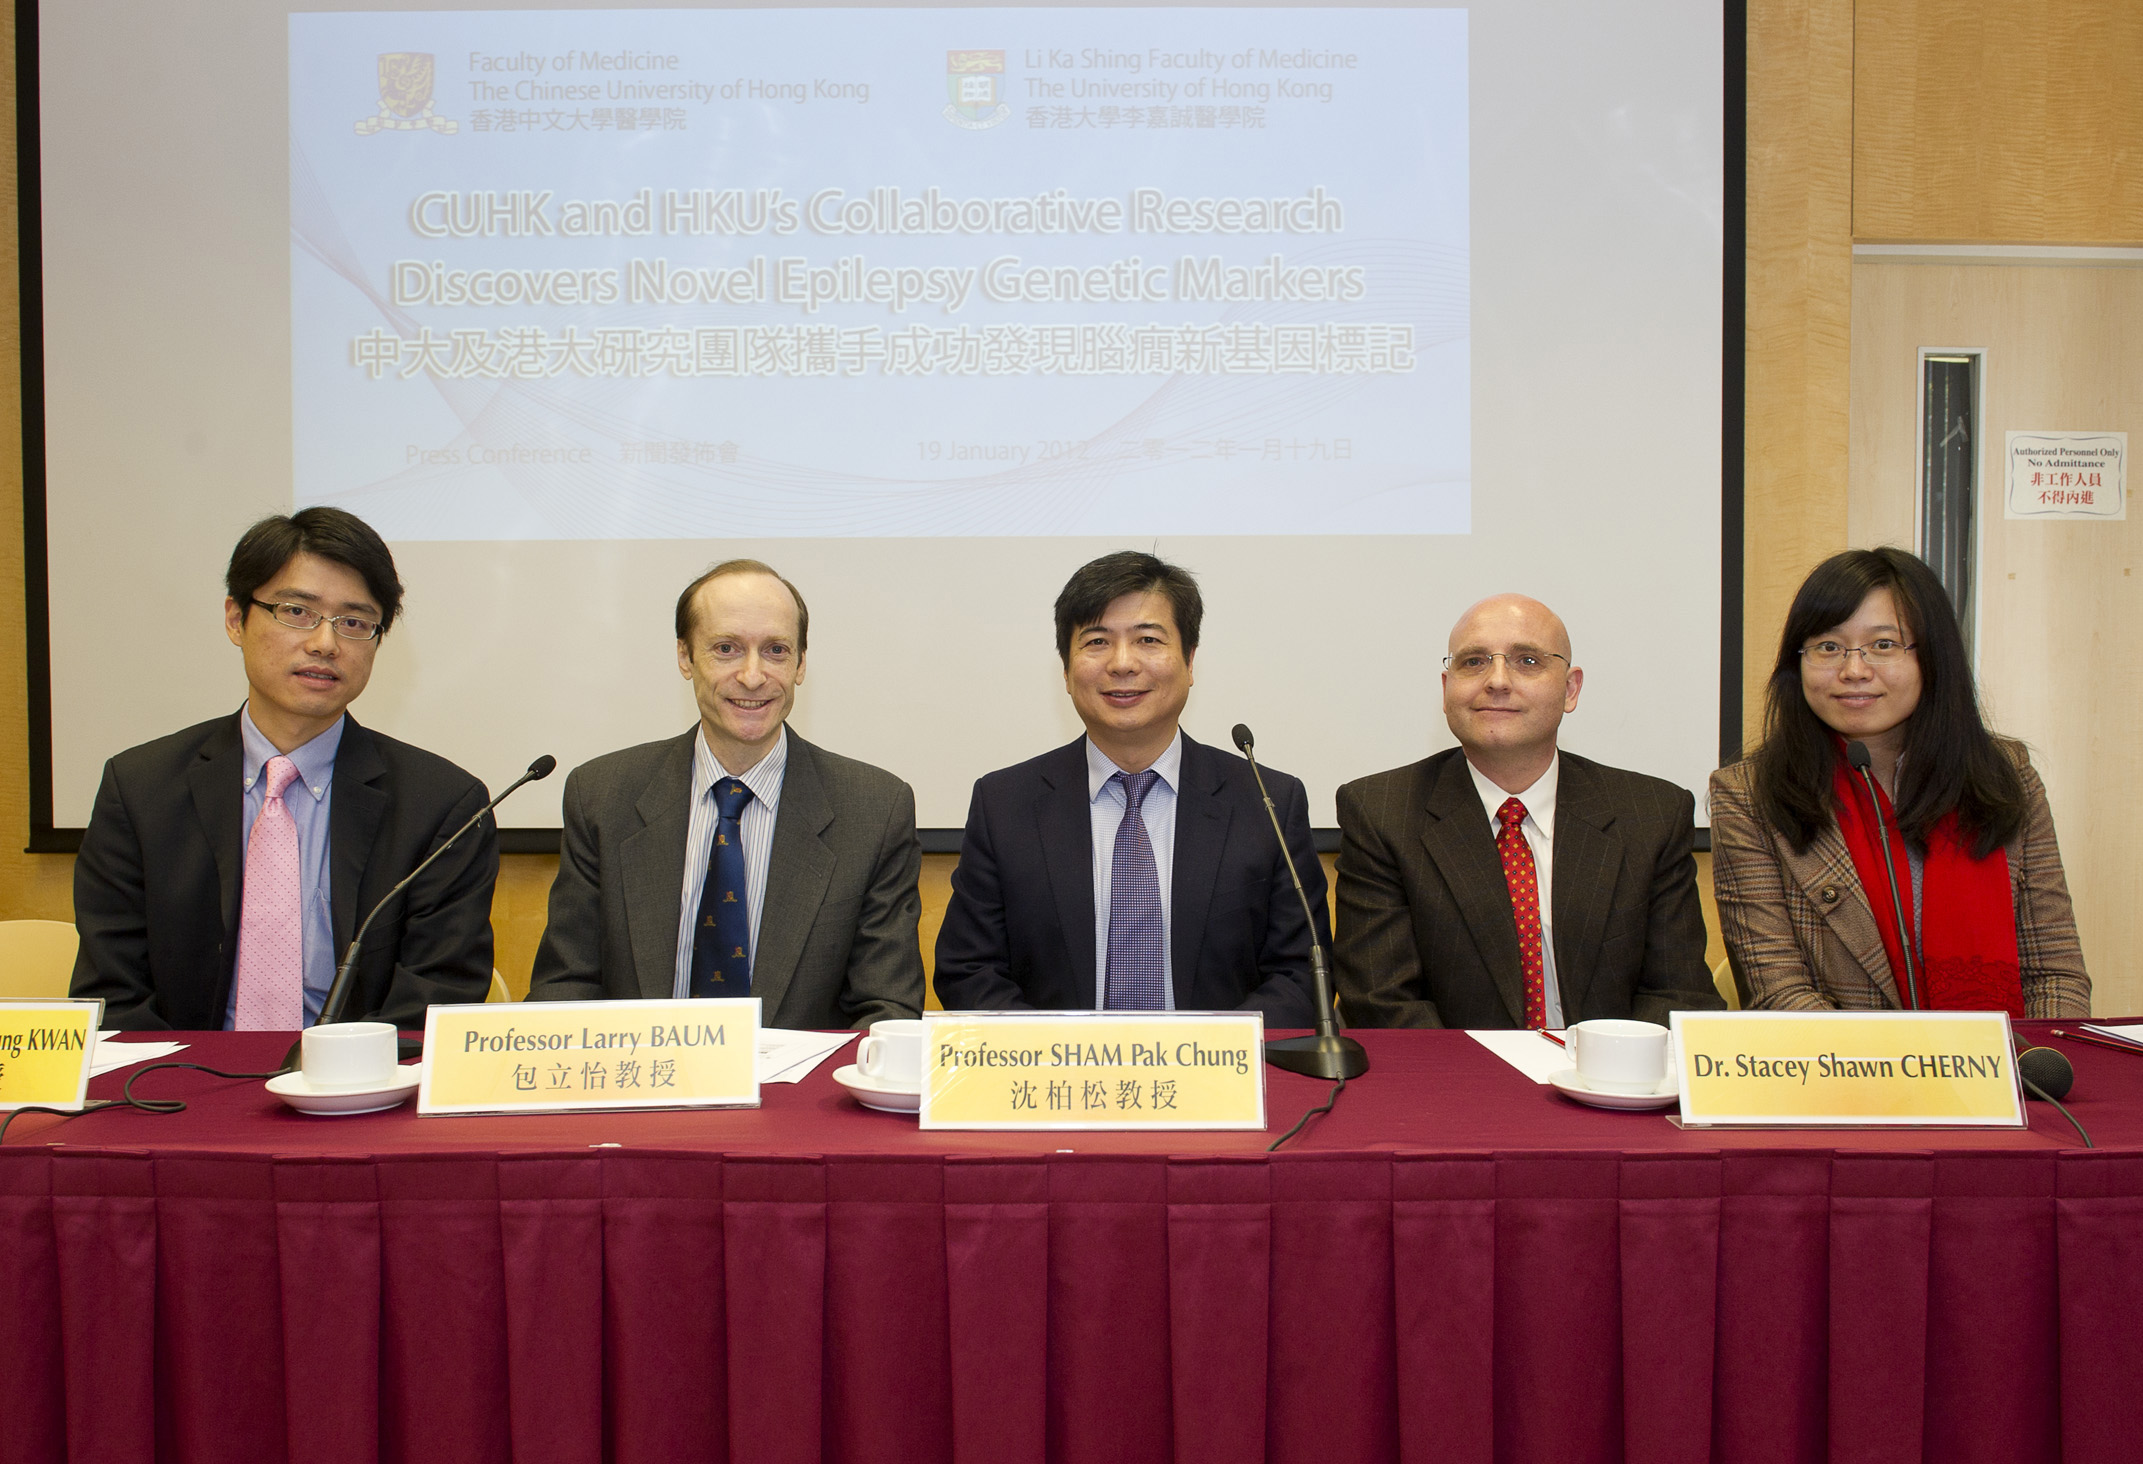 from left) Dr. Patrick KWAN, Honorary Clinical Associate Professor, Department of Medicine and Therapeutics, CUHK; Prof. Larry BAUM, Associate Professor, School of Pharmacy, CUHK; Prof. SHAM Pak Chung, Head of Department of Psychiatry, Li Ka Shing Faculty of Medicine, HKU; Dr. Stacey CHERNY, Assistant Professor, Department of Psychiatry, Li Ka Shing Faculty of Medicine, HKU; and Ms. GUO Youling, PhD Student, Department of Psychiatry, Li Ka Shing Faculty of Medicine, HKU